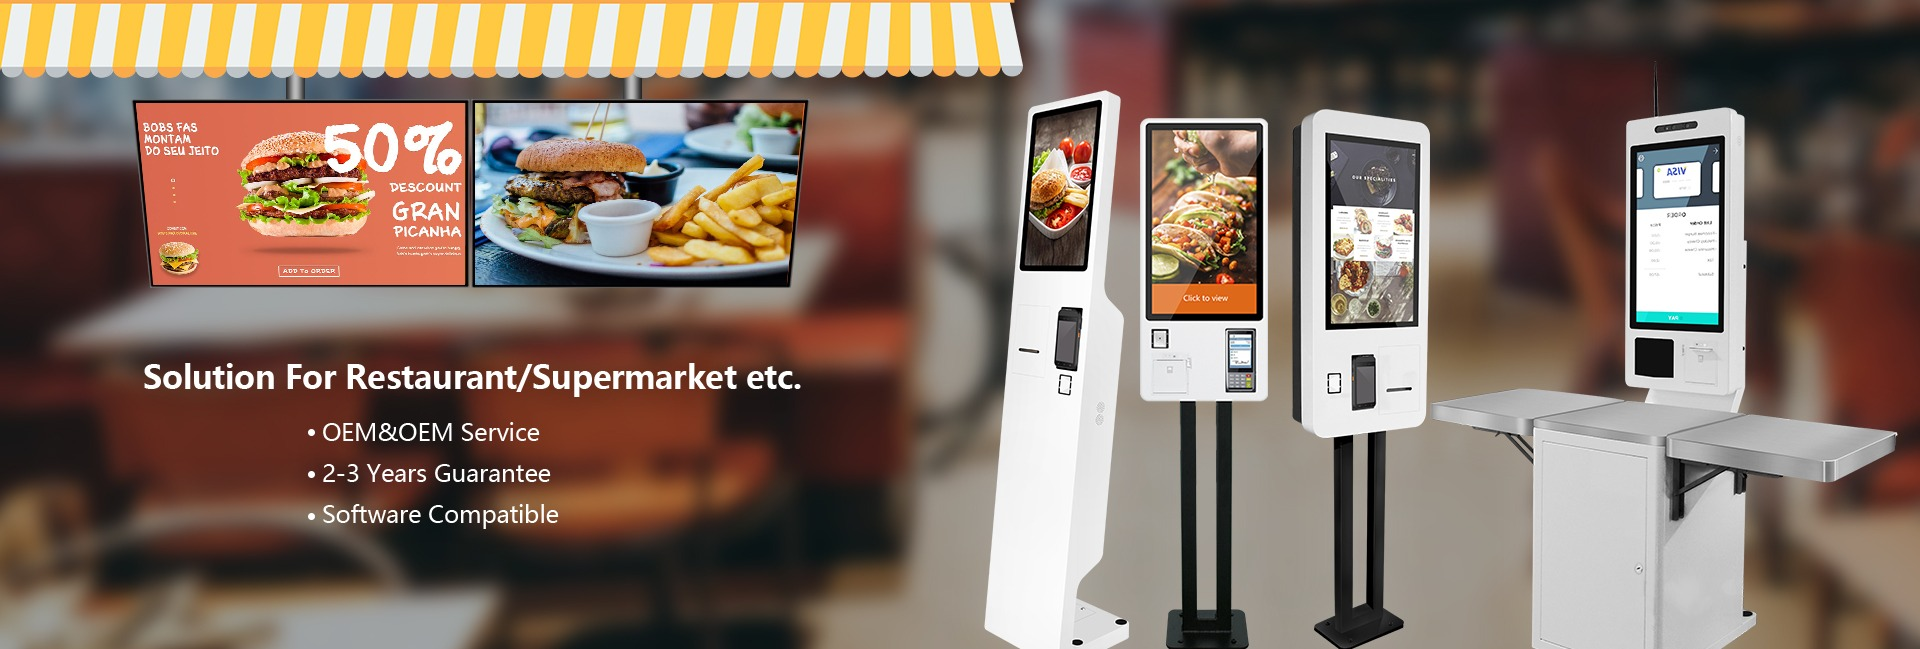 restaurant order taking system Digital Screens and self order kiosk